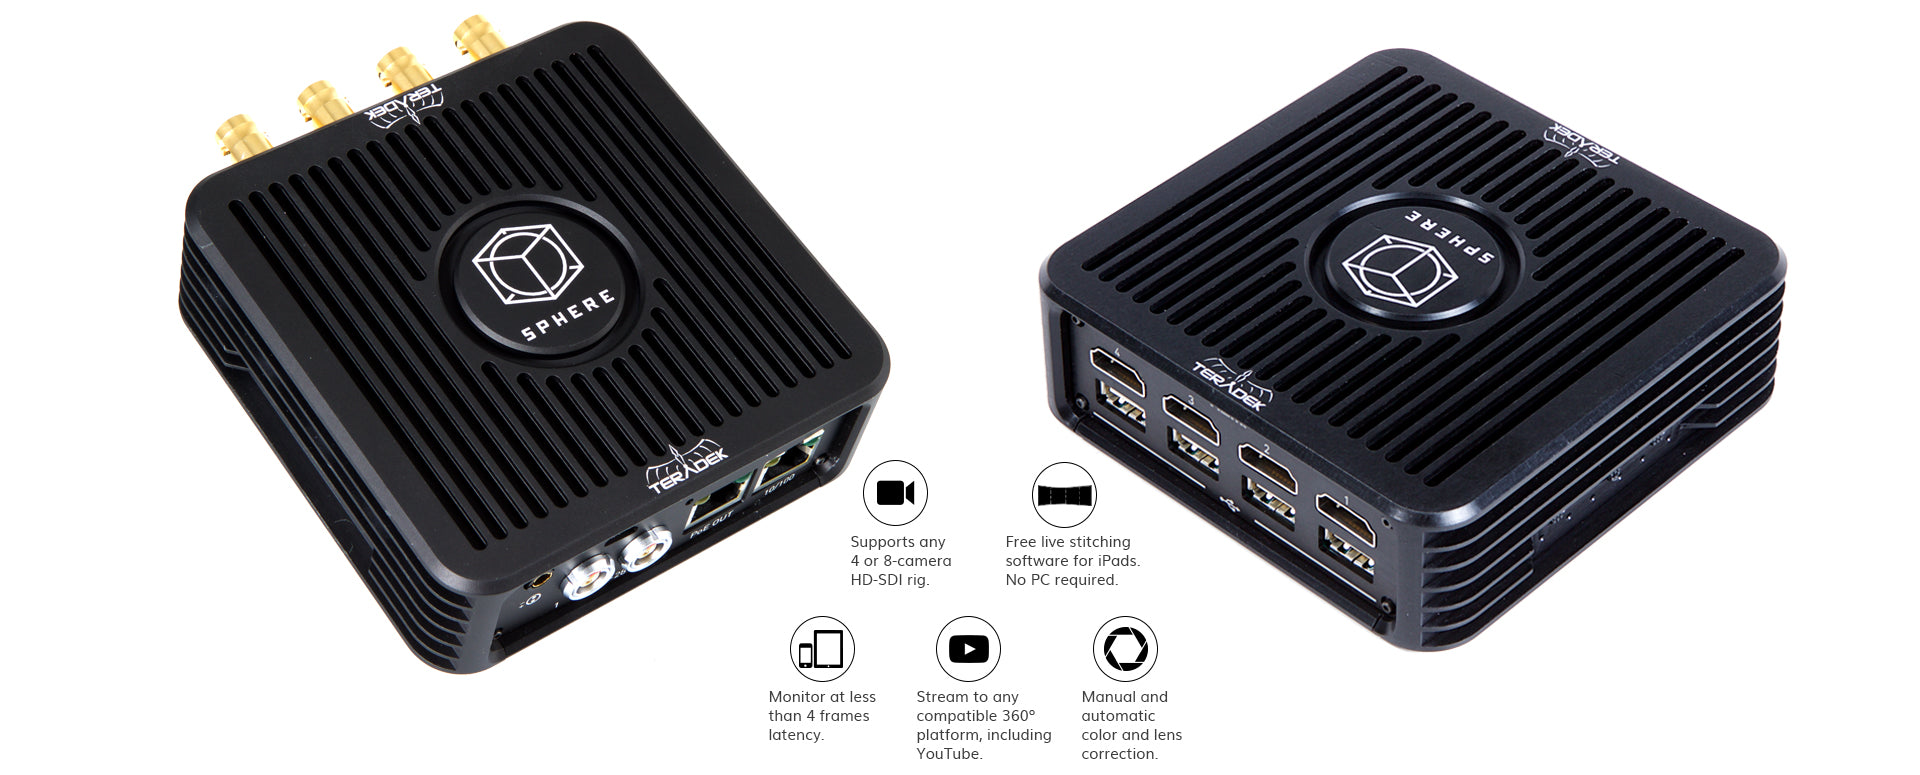 Sphere compatible with HDMI or HD-SDI